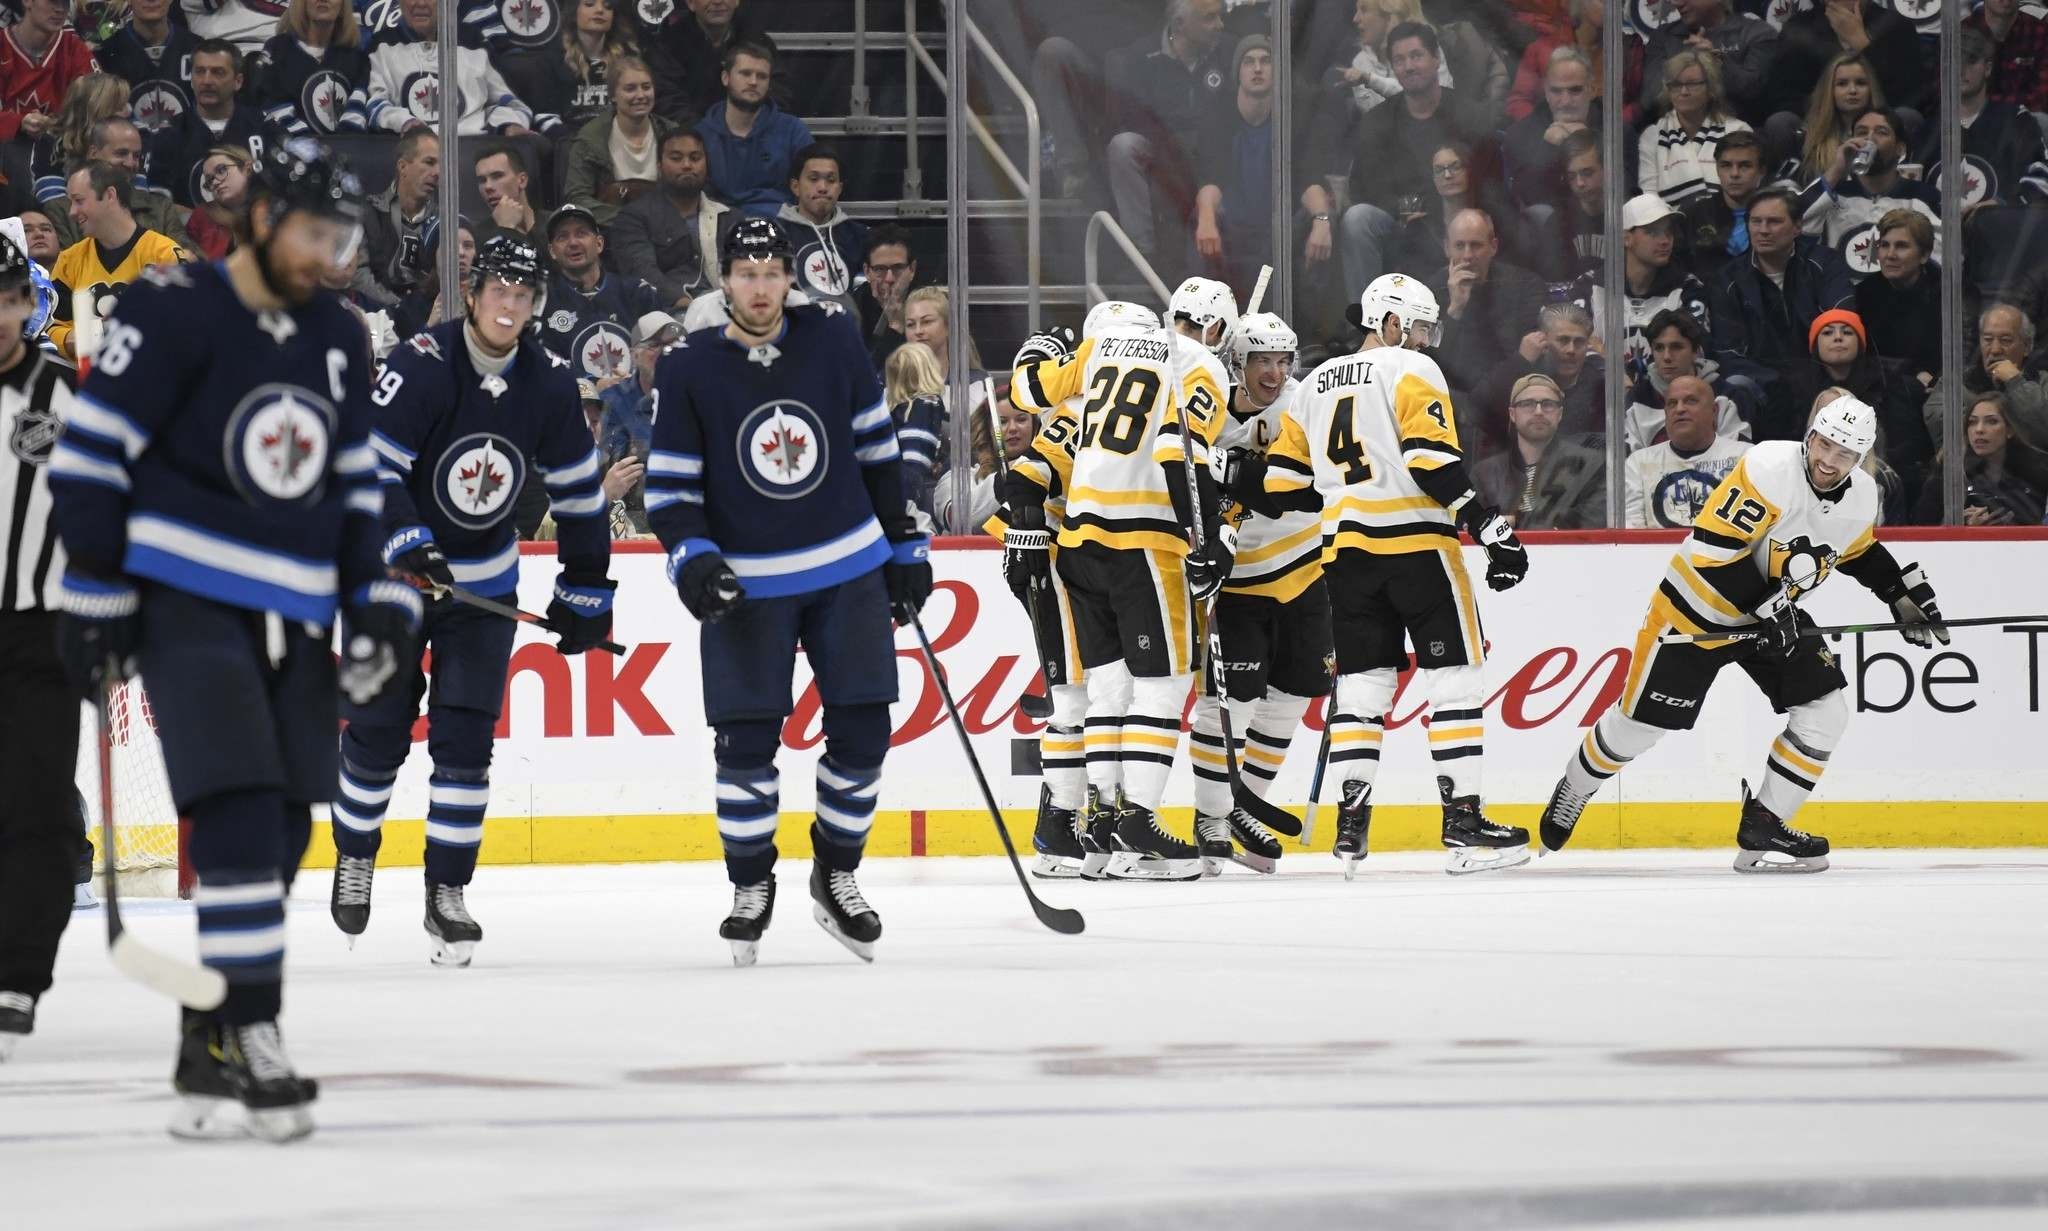 "Mark Scheifele, Blake Wheeler, Patrik Laine, Kyle Connor, Nikolaj Ehlers and Josh Morrissey were a combined minus-18 against the Penguins on Sunday. (Fred Greenslade / The Canadian Press)</p> <p>""></a><figcaption readability="